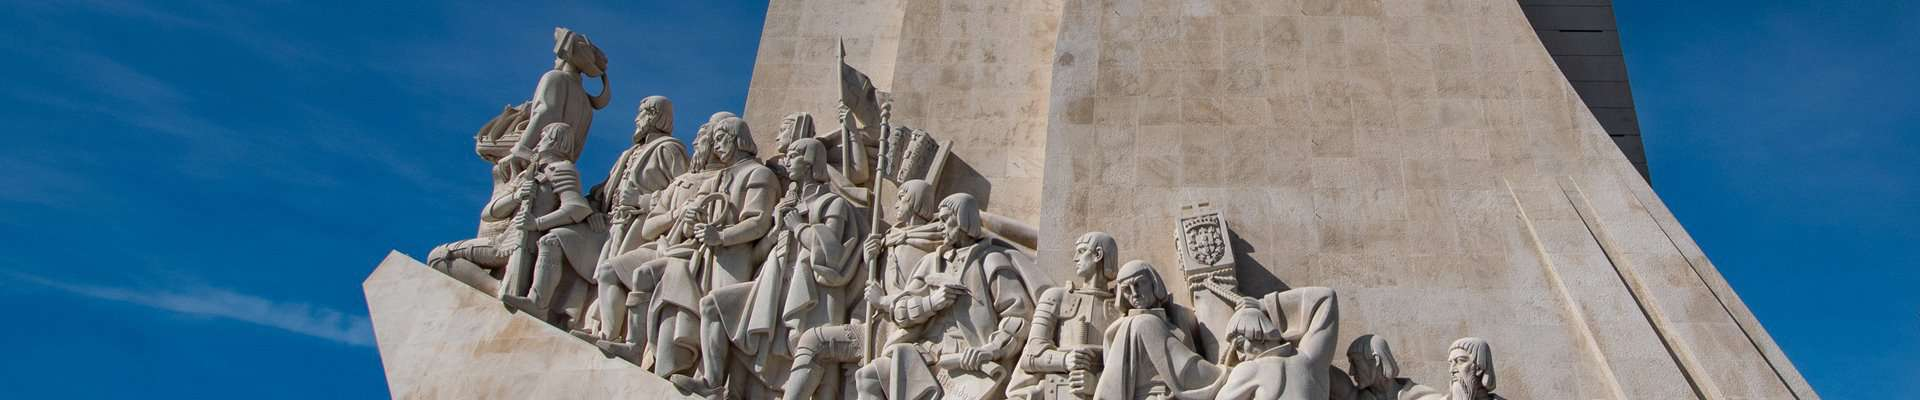 The 'monument of the discoverers' on the waterfront in Lisbon, Portugal.